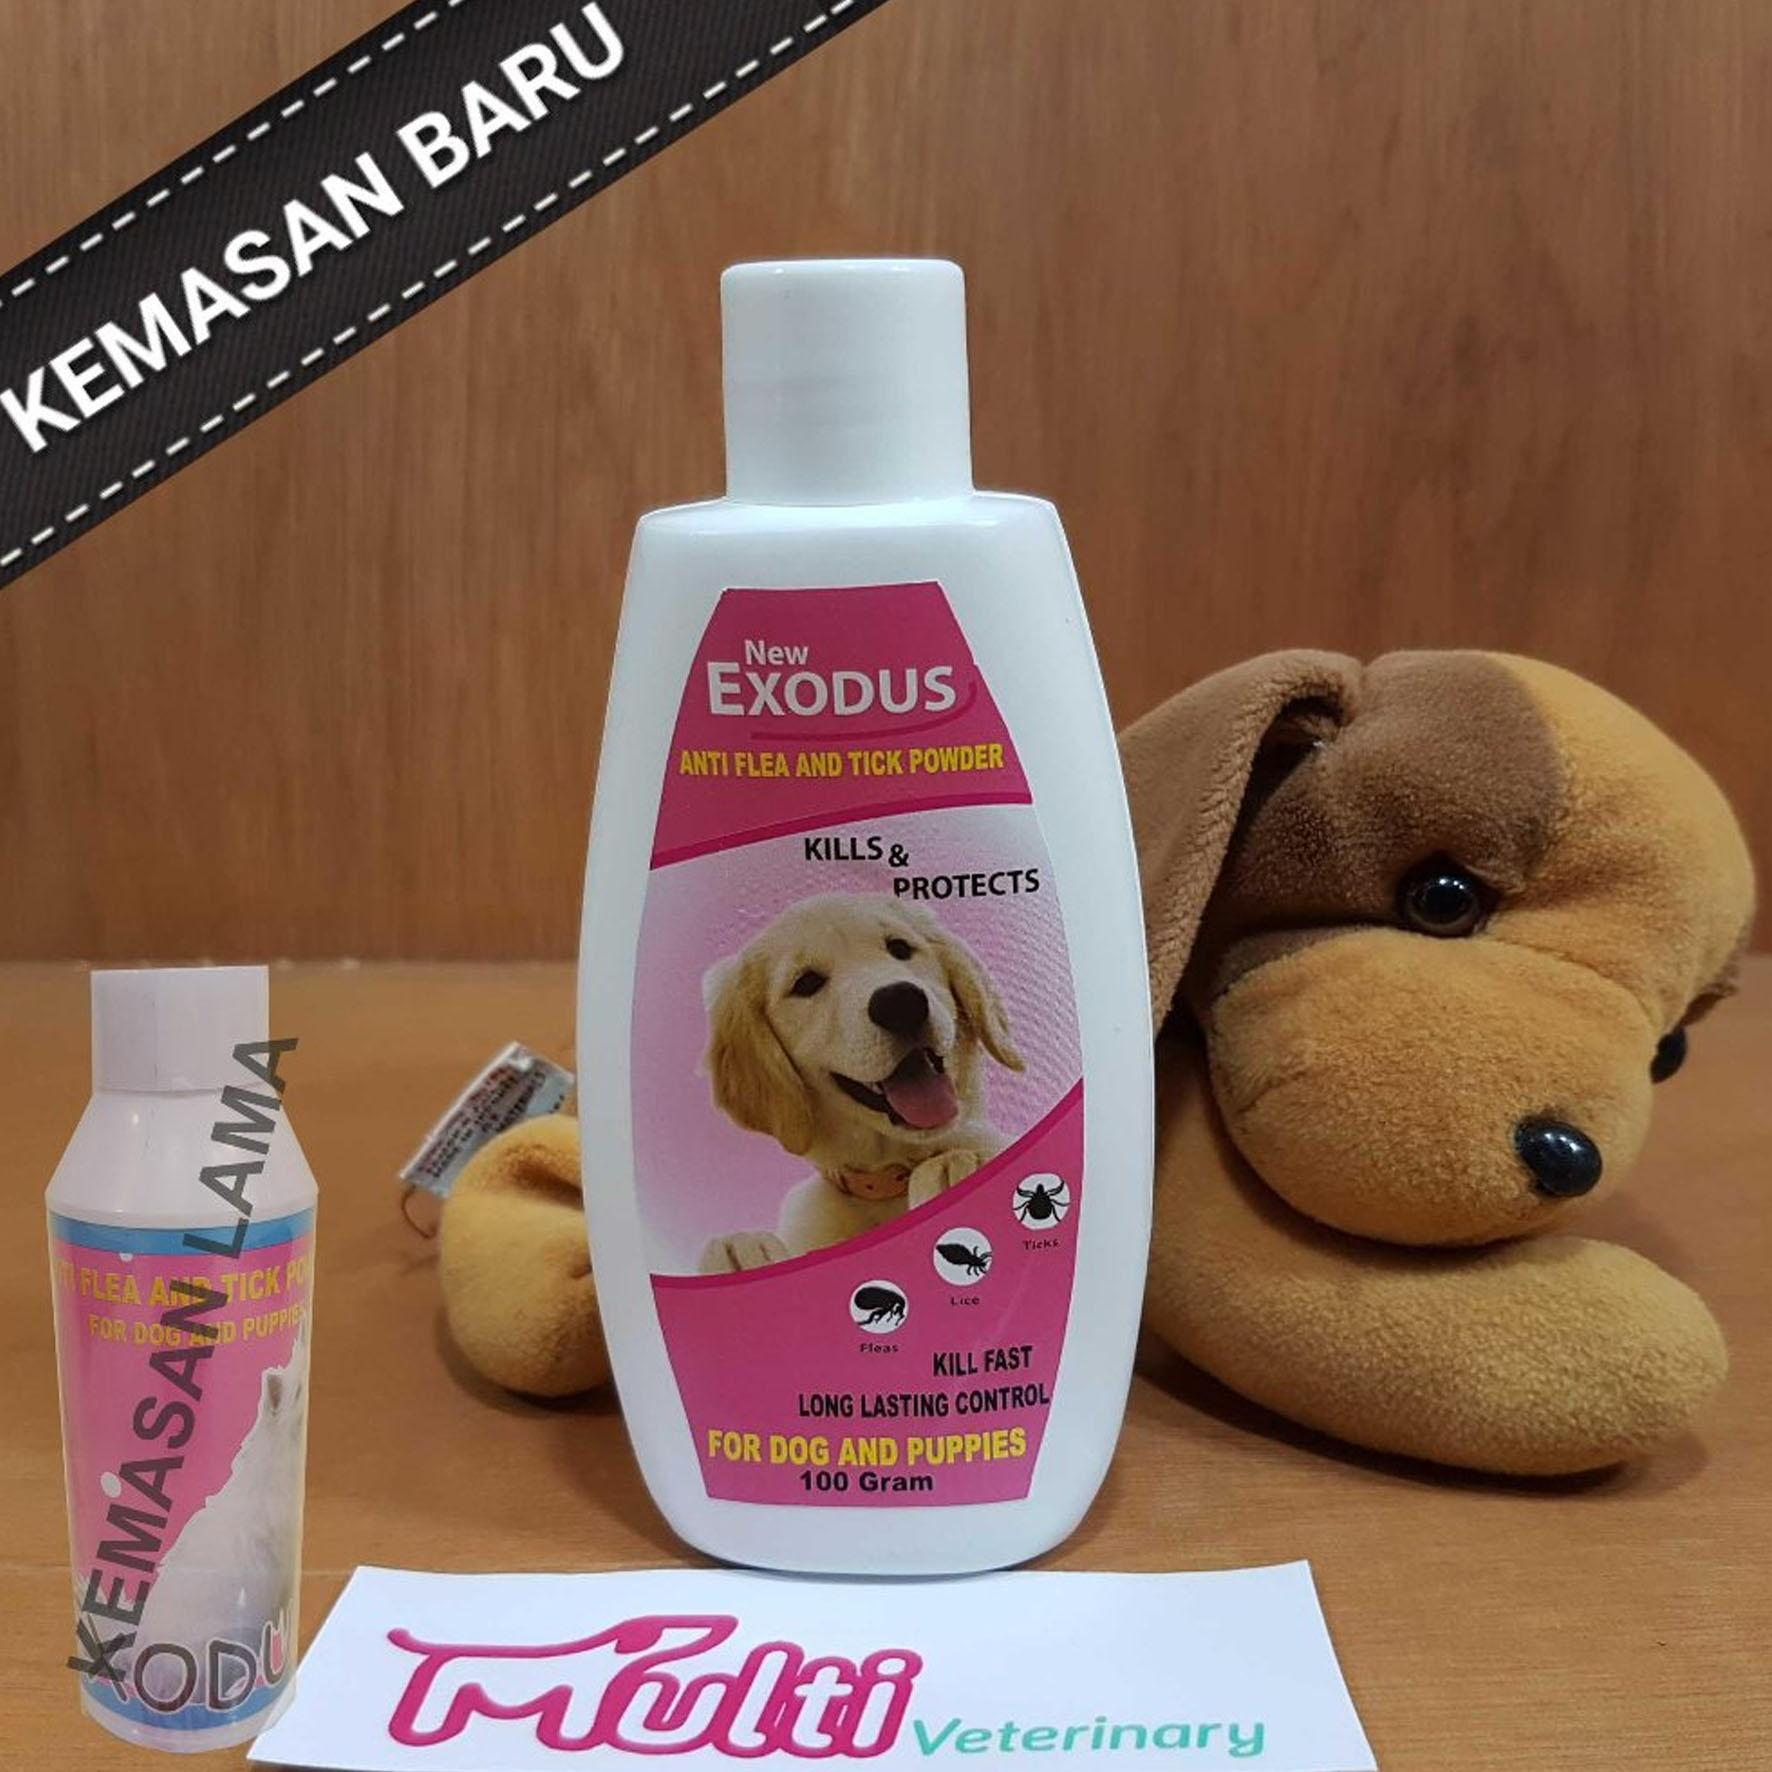 Exodus Bedak Anjing Dog Puppies Anti Flea Tick Powder Talk 100 Gr By Multi Veterinary.